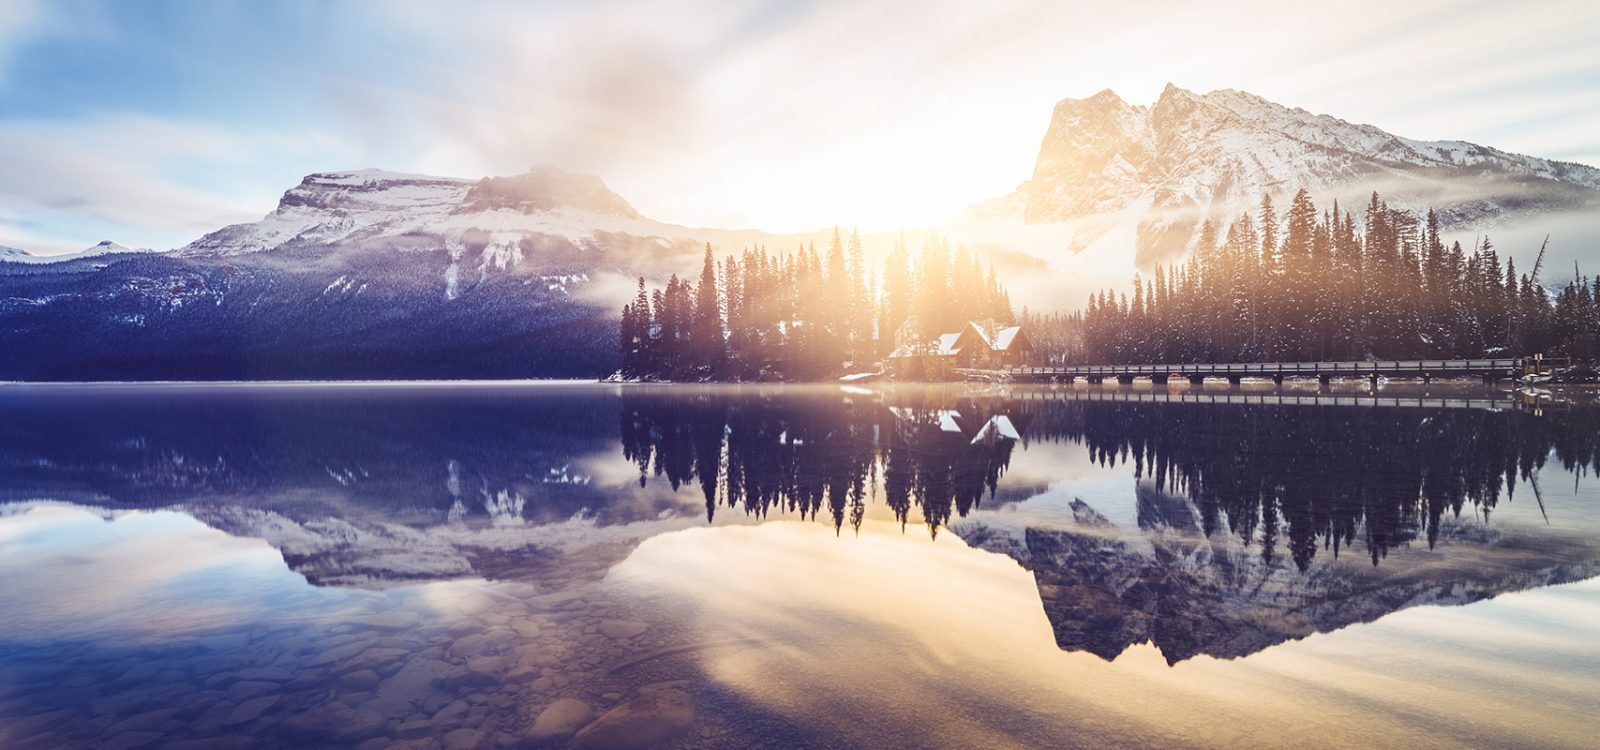 Scenic view of mountains at Emerald Lake